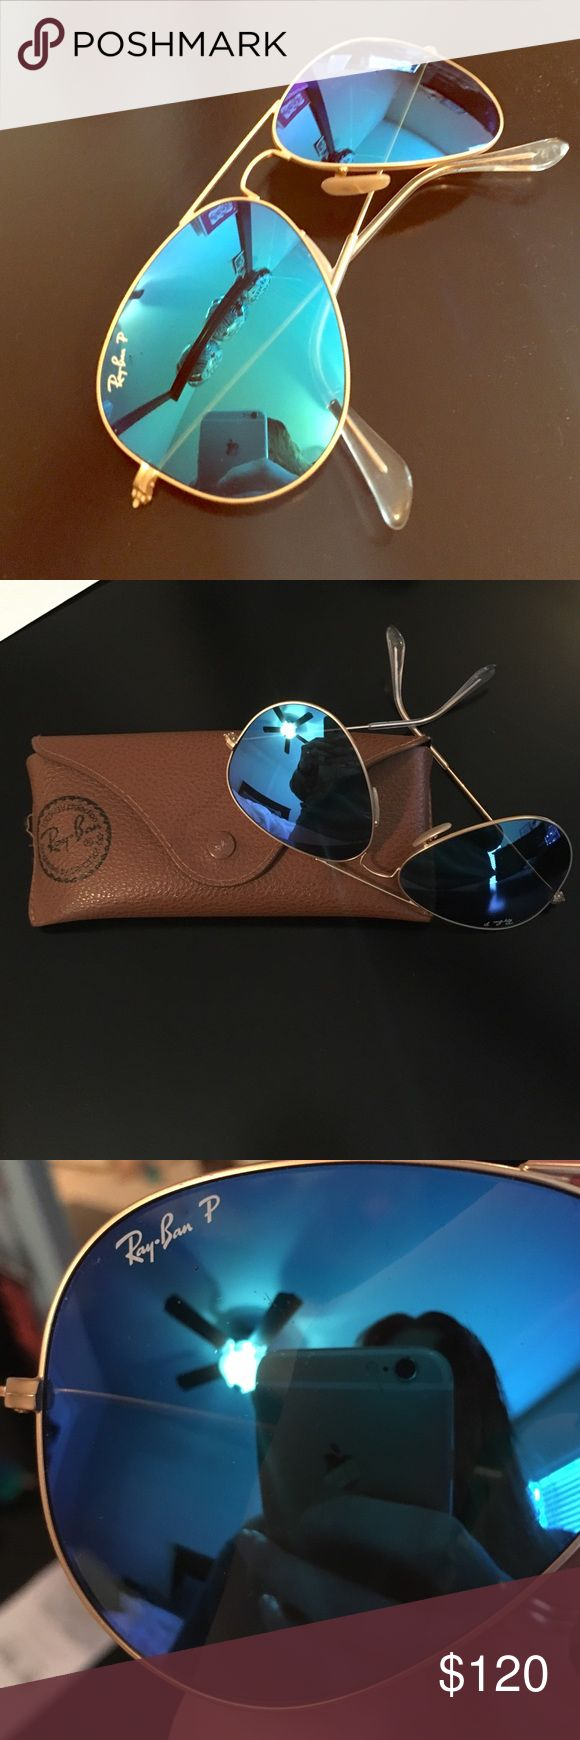 Ray Ban Gold Framed Aviators Classic Ray Ban polarized blue mirrored aviators! Purchased from Nordstrom 2 years ago, these are in EUC! No scratches on lenses and come with original case:) looking to trade for Ray Ban round metal classic (black tiny or rose gold) or just selling. Ray-Ban Accessories Sunglasses